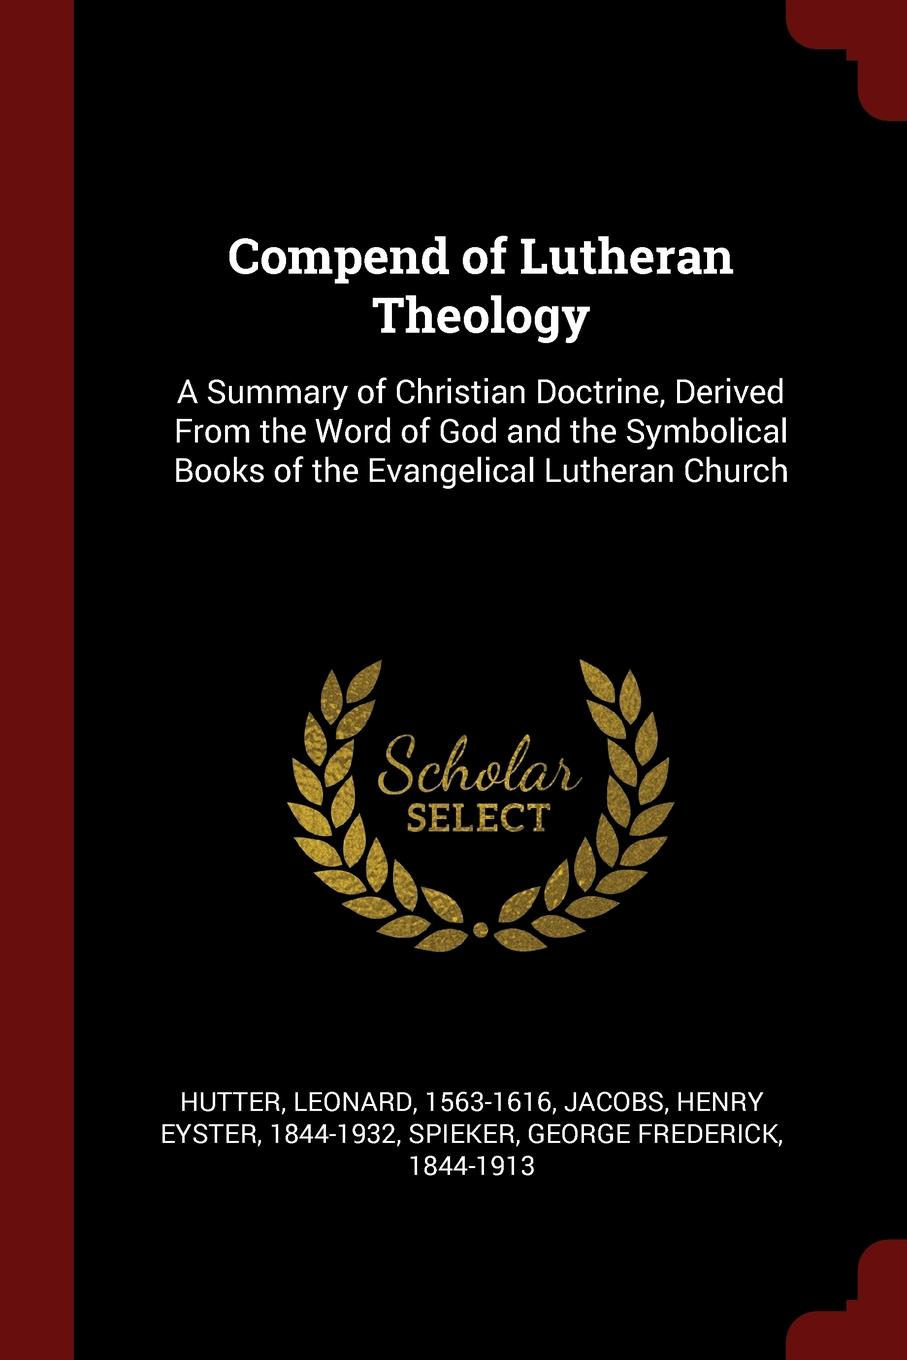 Leonard Hutter, Henry Eyster Jacobs, George Frederick Spieker Compend of Lutheran Theology. A Summary of Christian Doctrine, Derived From the Word of God and the Symbolical Books of the Evangelical Lutheran Church bente friedrich historical introductions to the symbolical books of the evangelical lutheran church